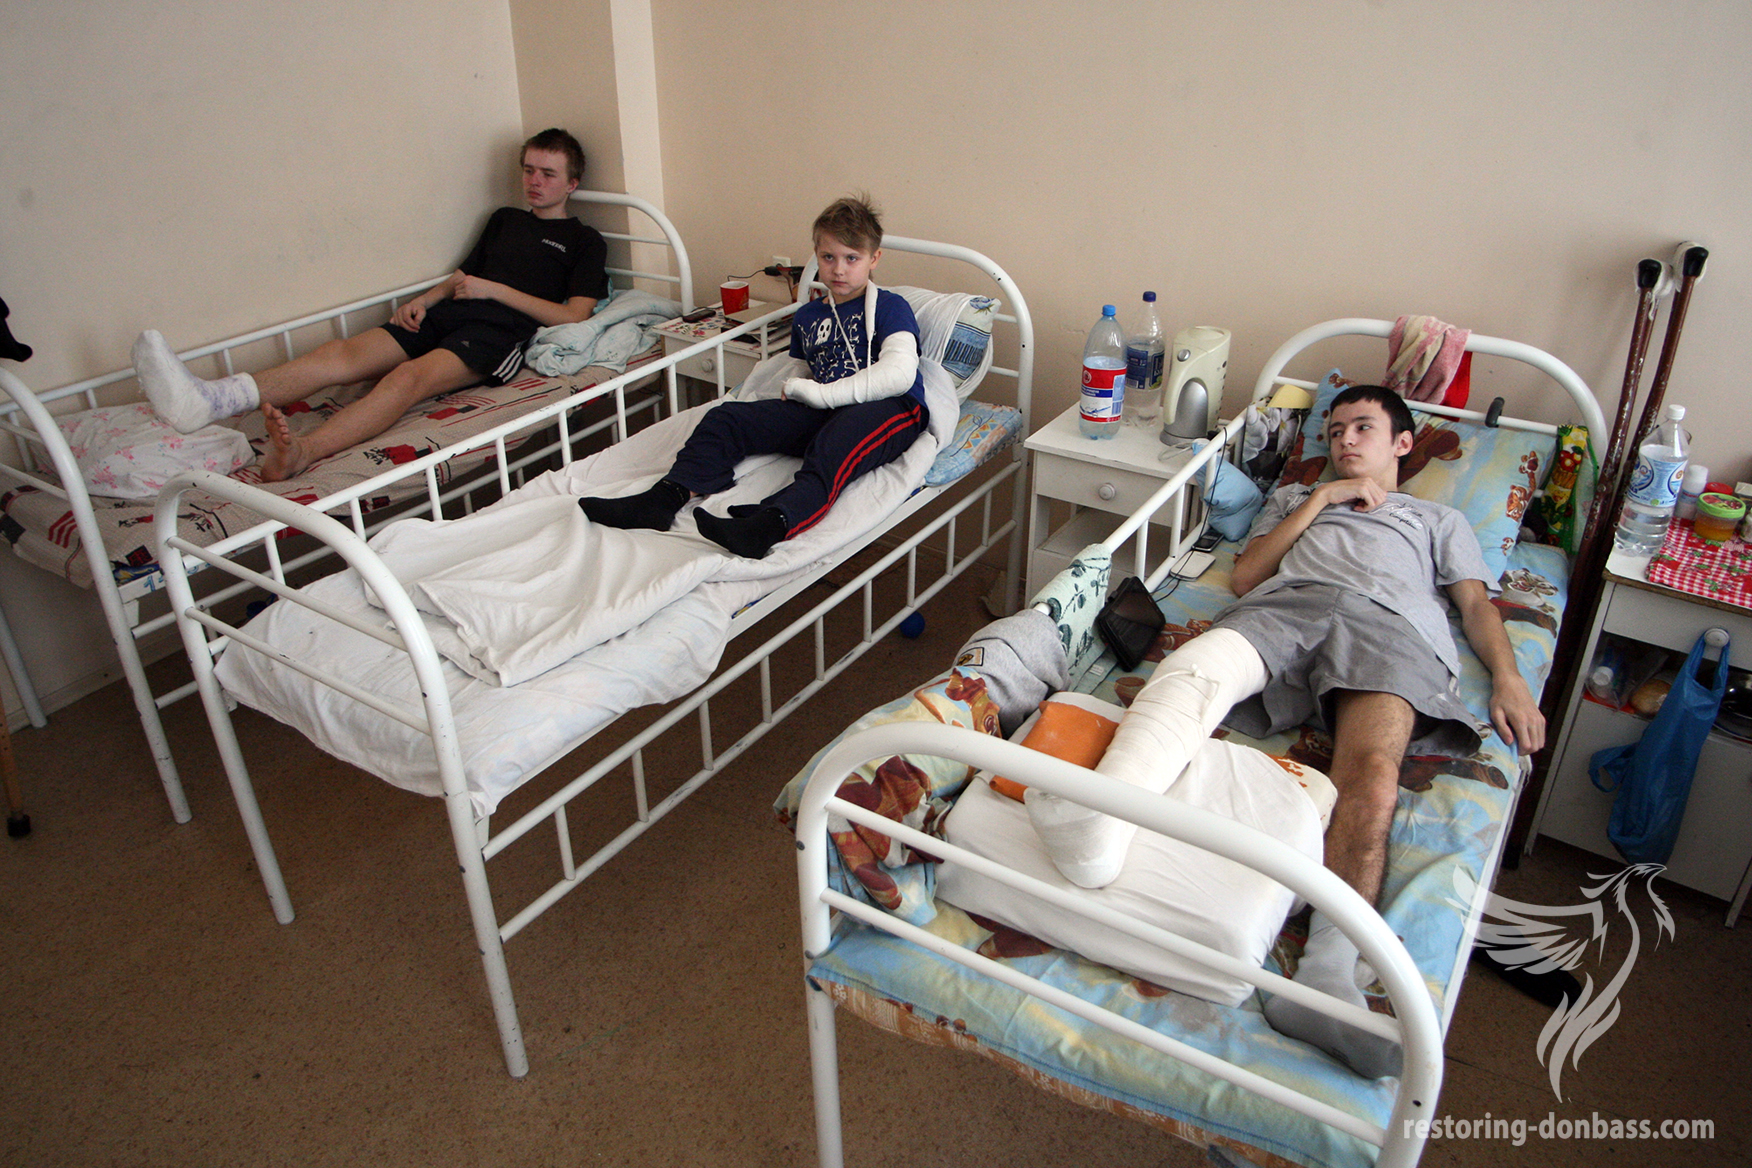 More than 17 thousand civilians got injuries or became disabled -. Elena Petryaeva